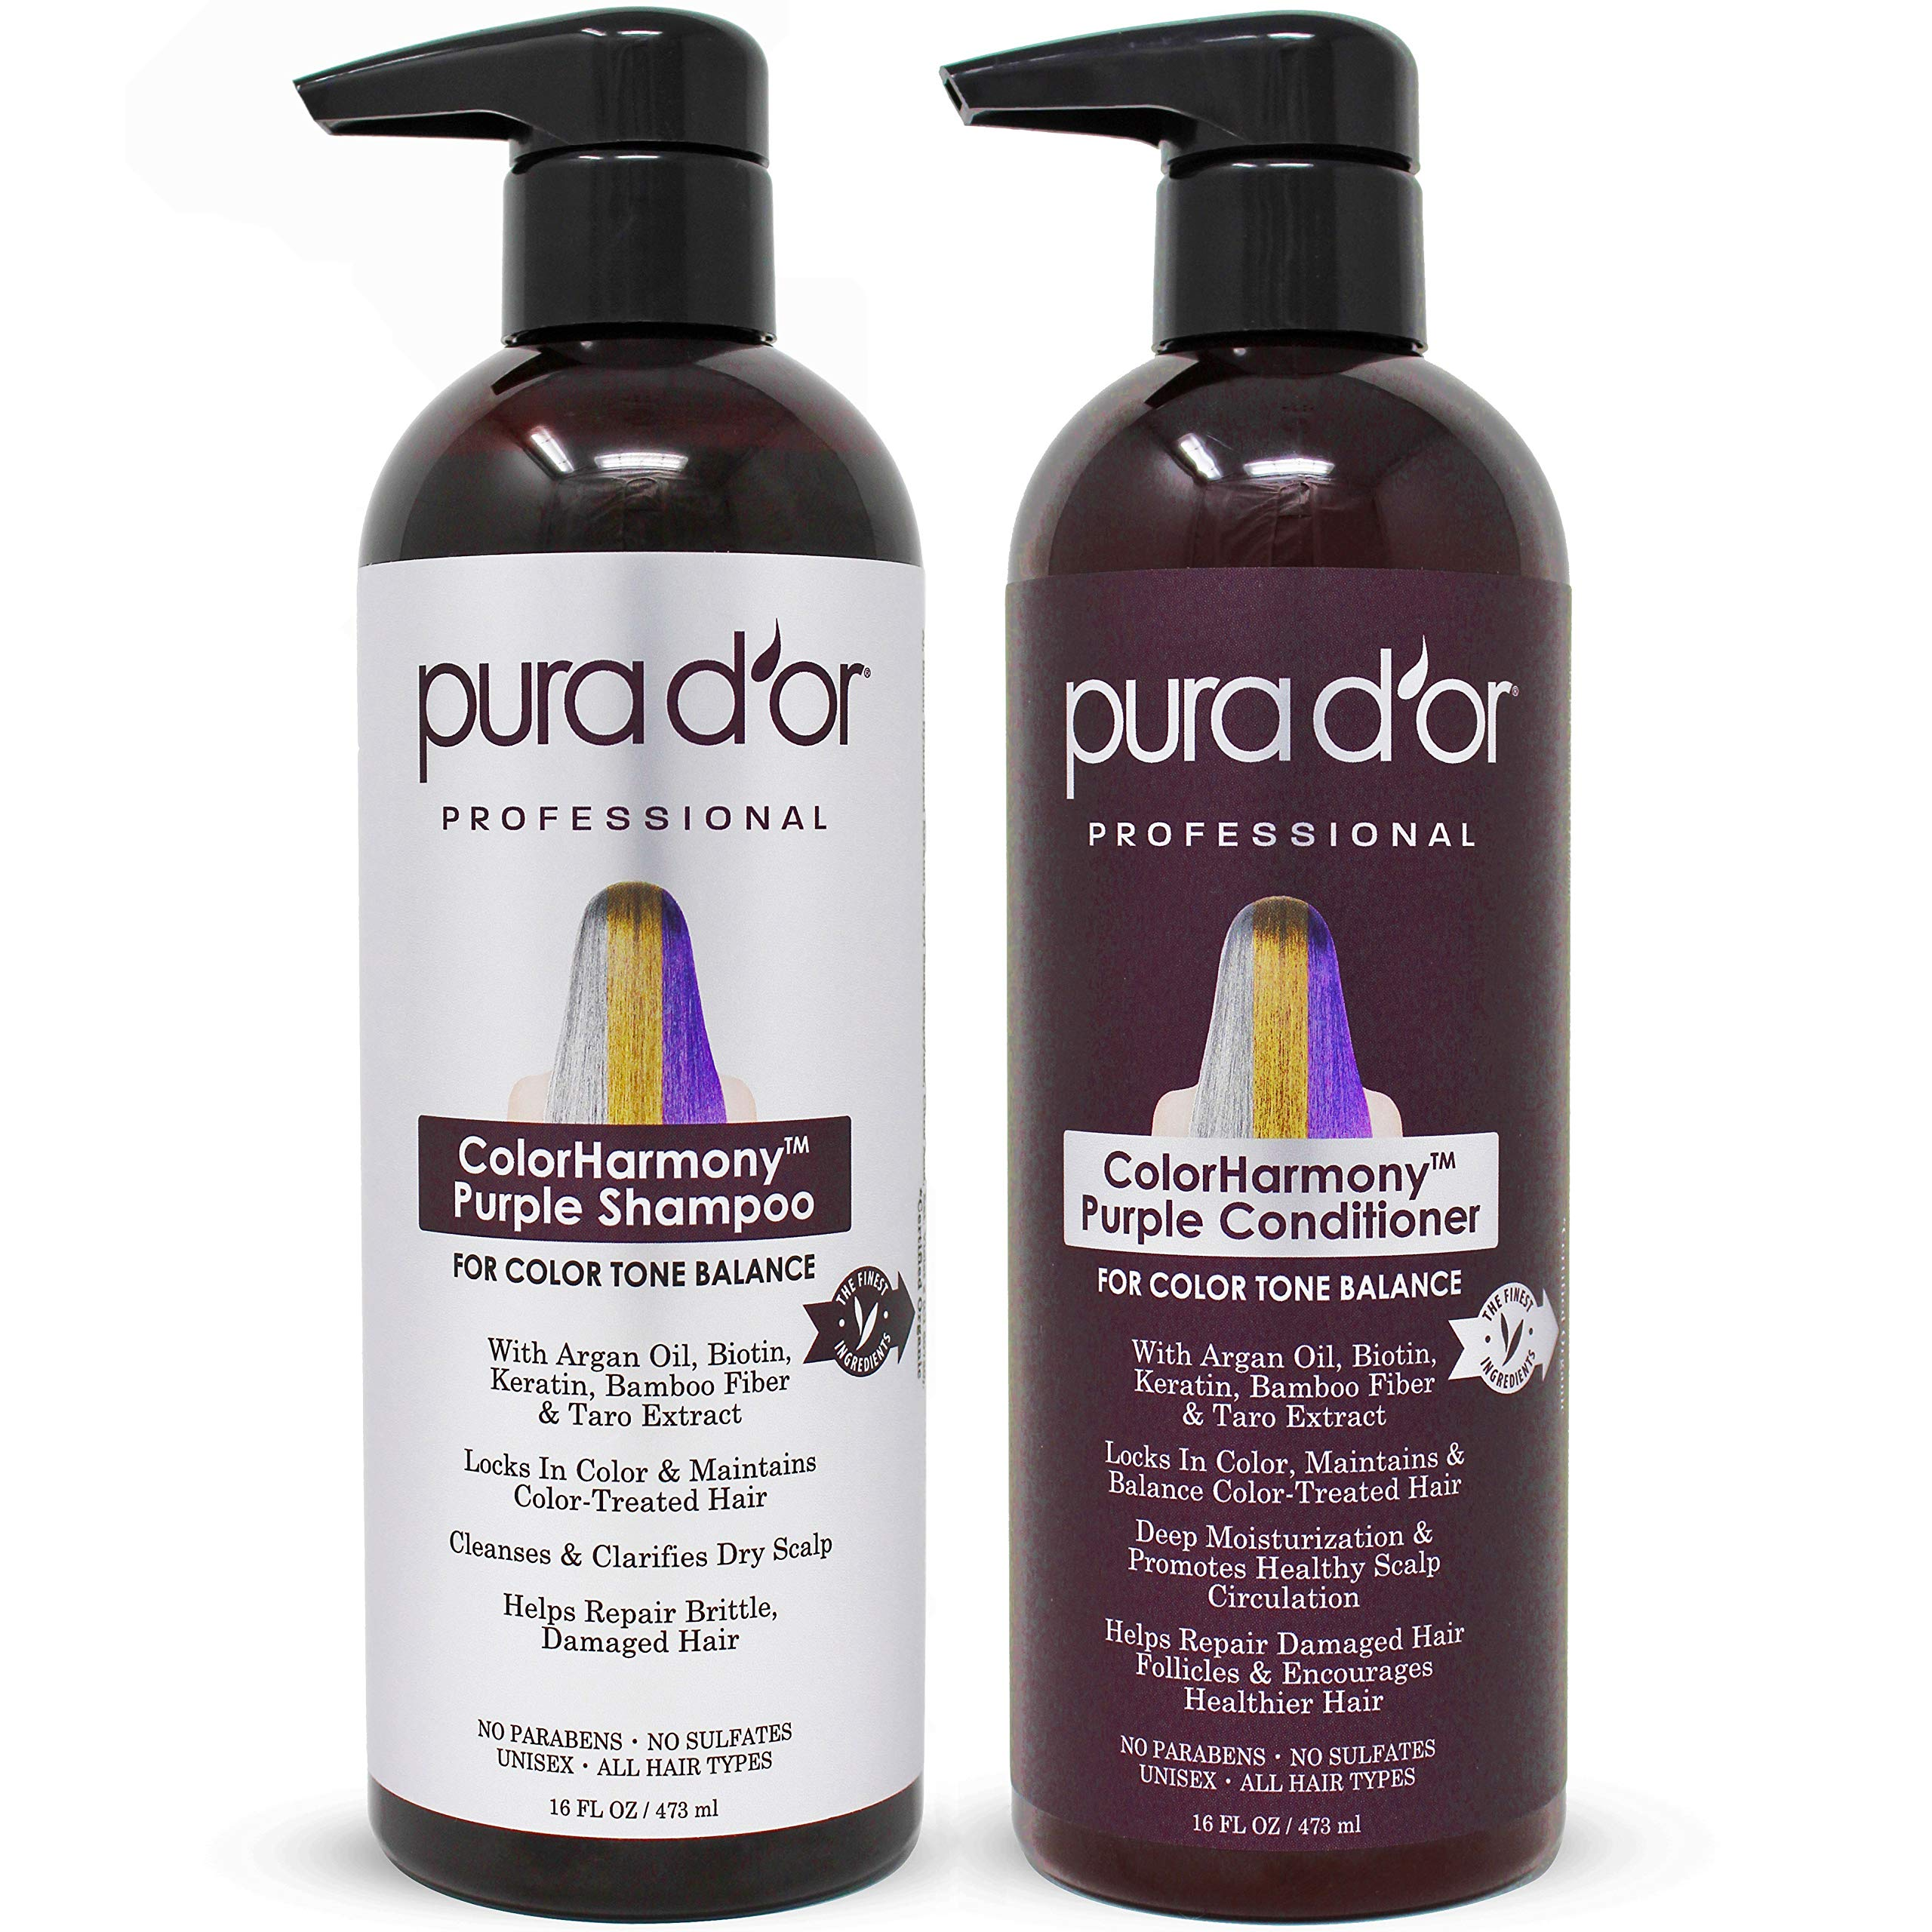 PURA D'OR Professional Grade Purple Biotin ColorHarmony Shampoo & Conditioner Set - Blonde, Silver & Color Treated Hair - Keratin, Bamboo Fiber, Taro - Sulfate Free, Natural Ingredients - Men & Women by PURA D'OR